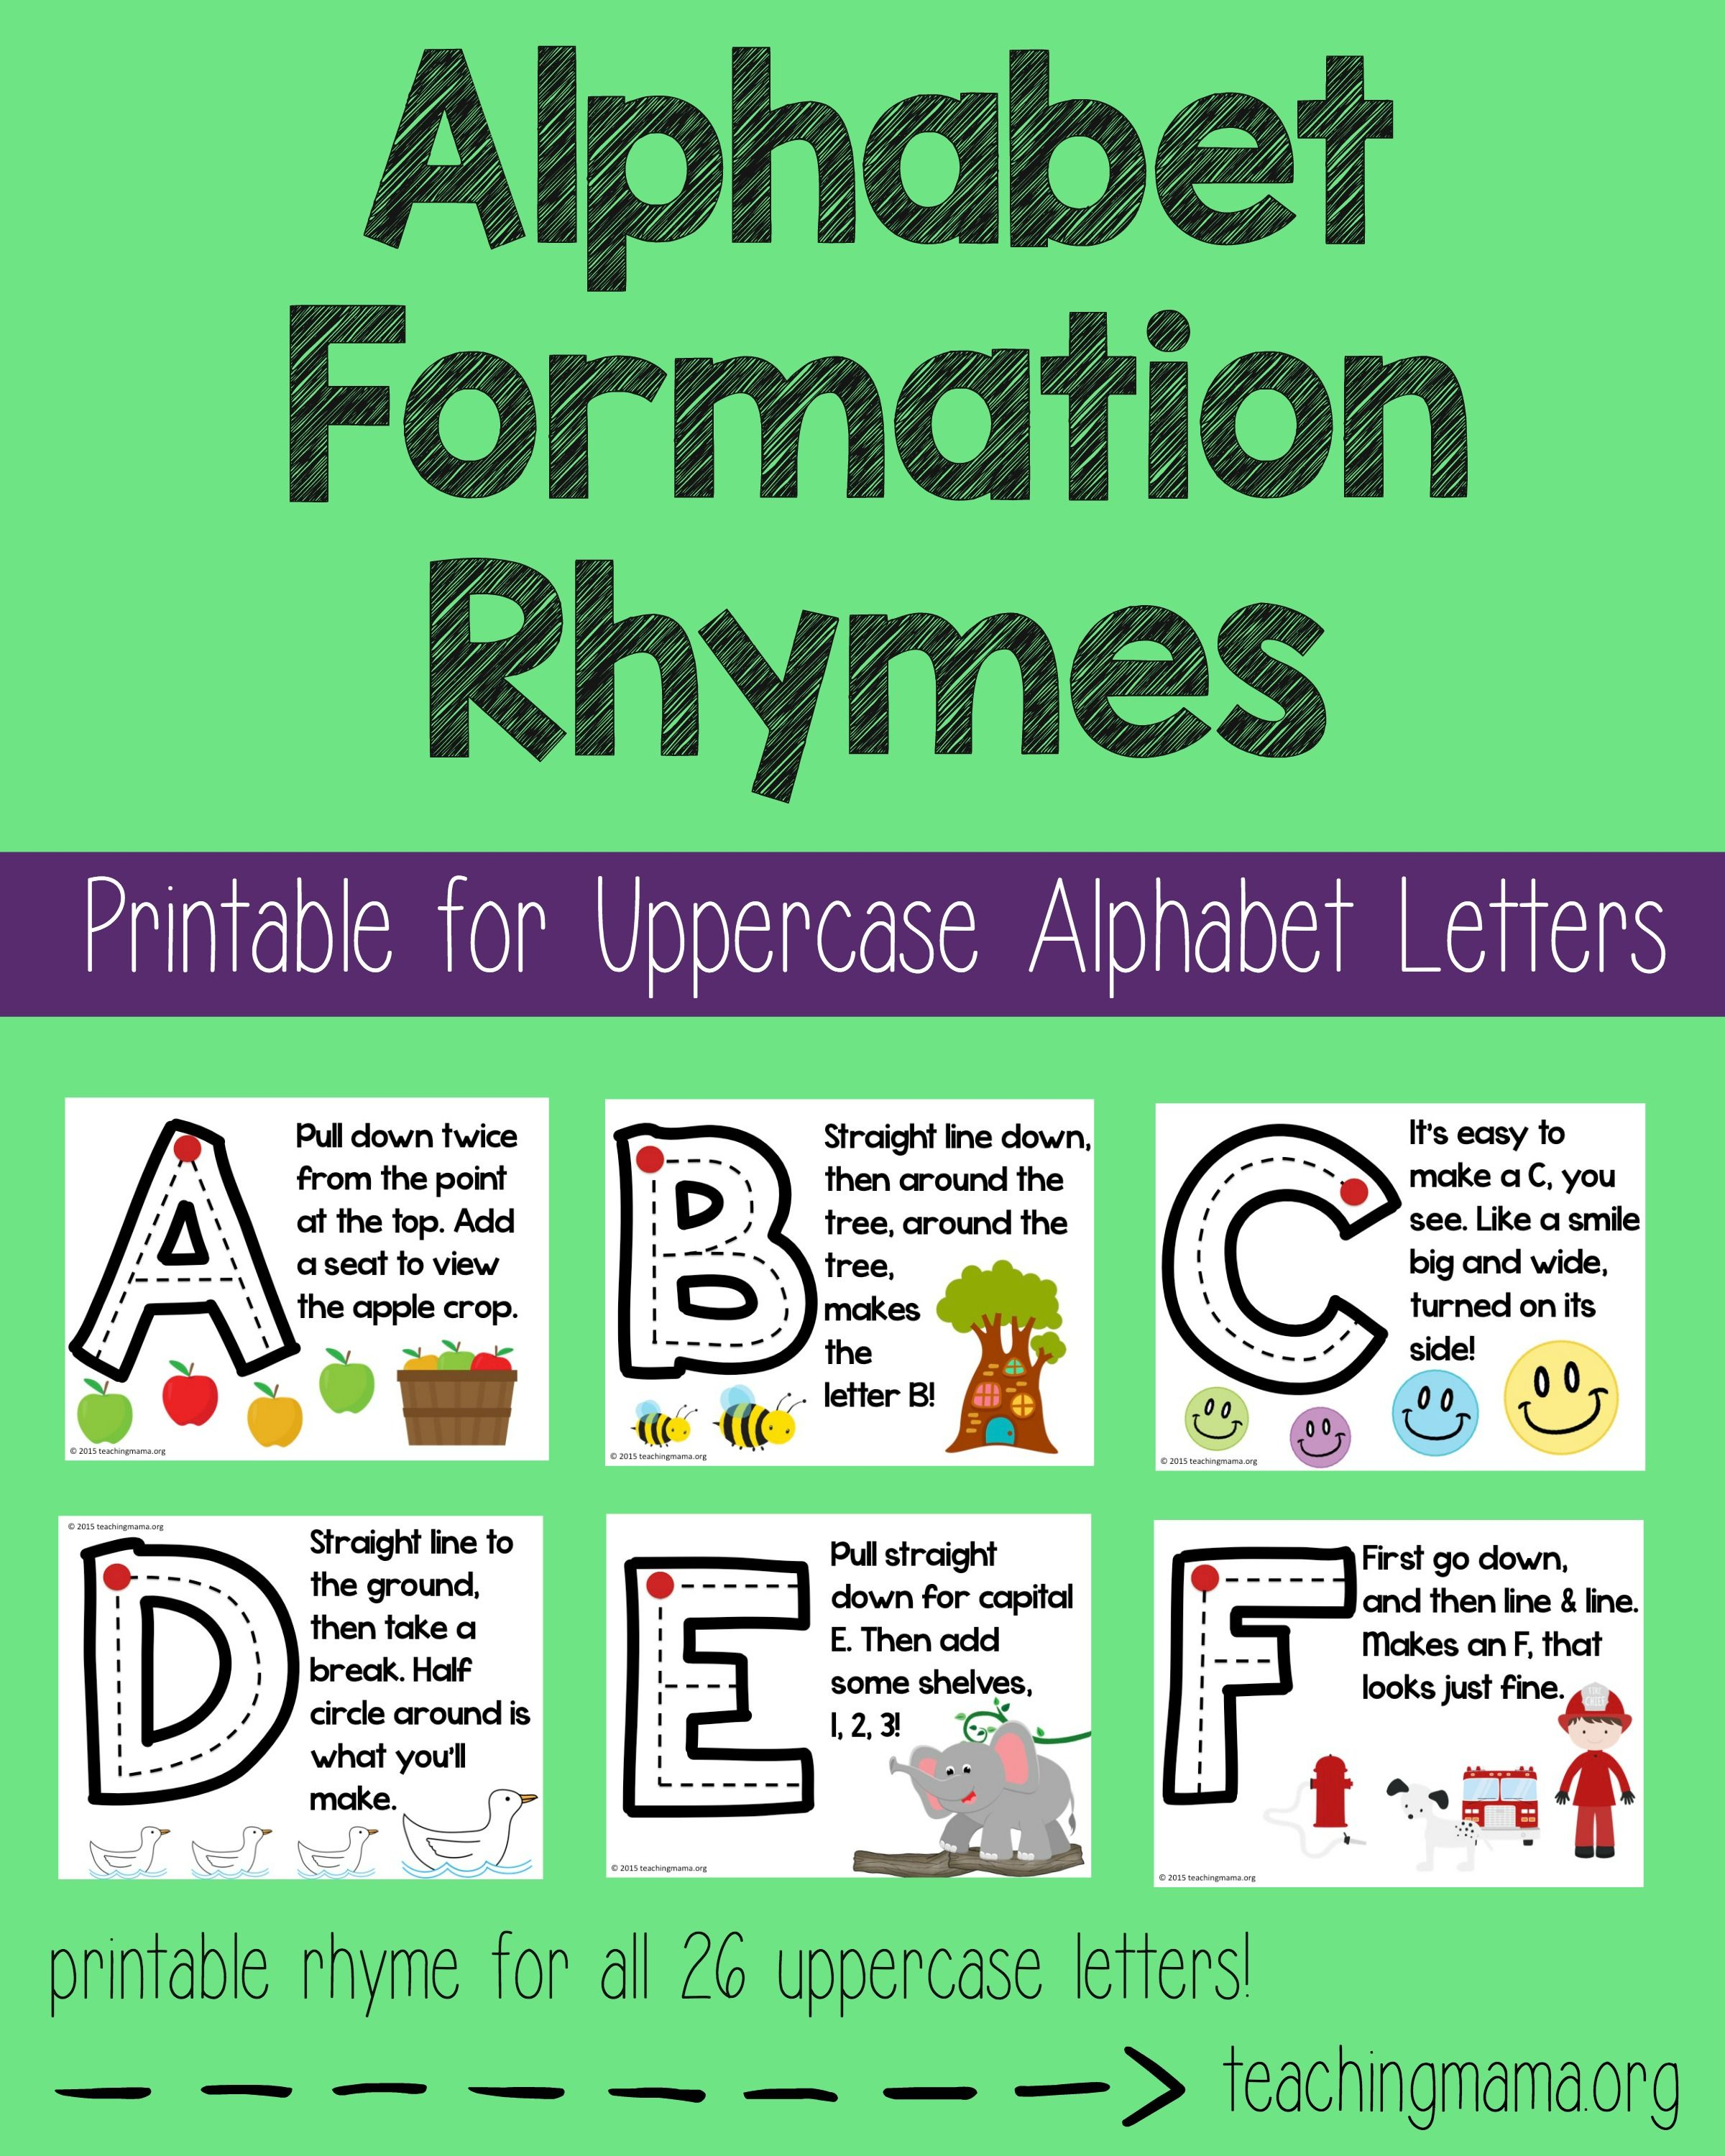 Alphabet Formation Rhymes With Images